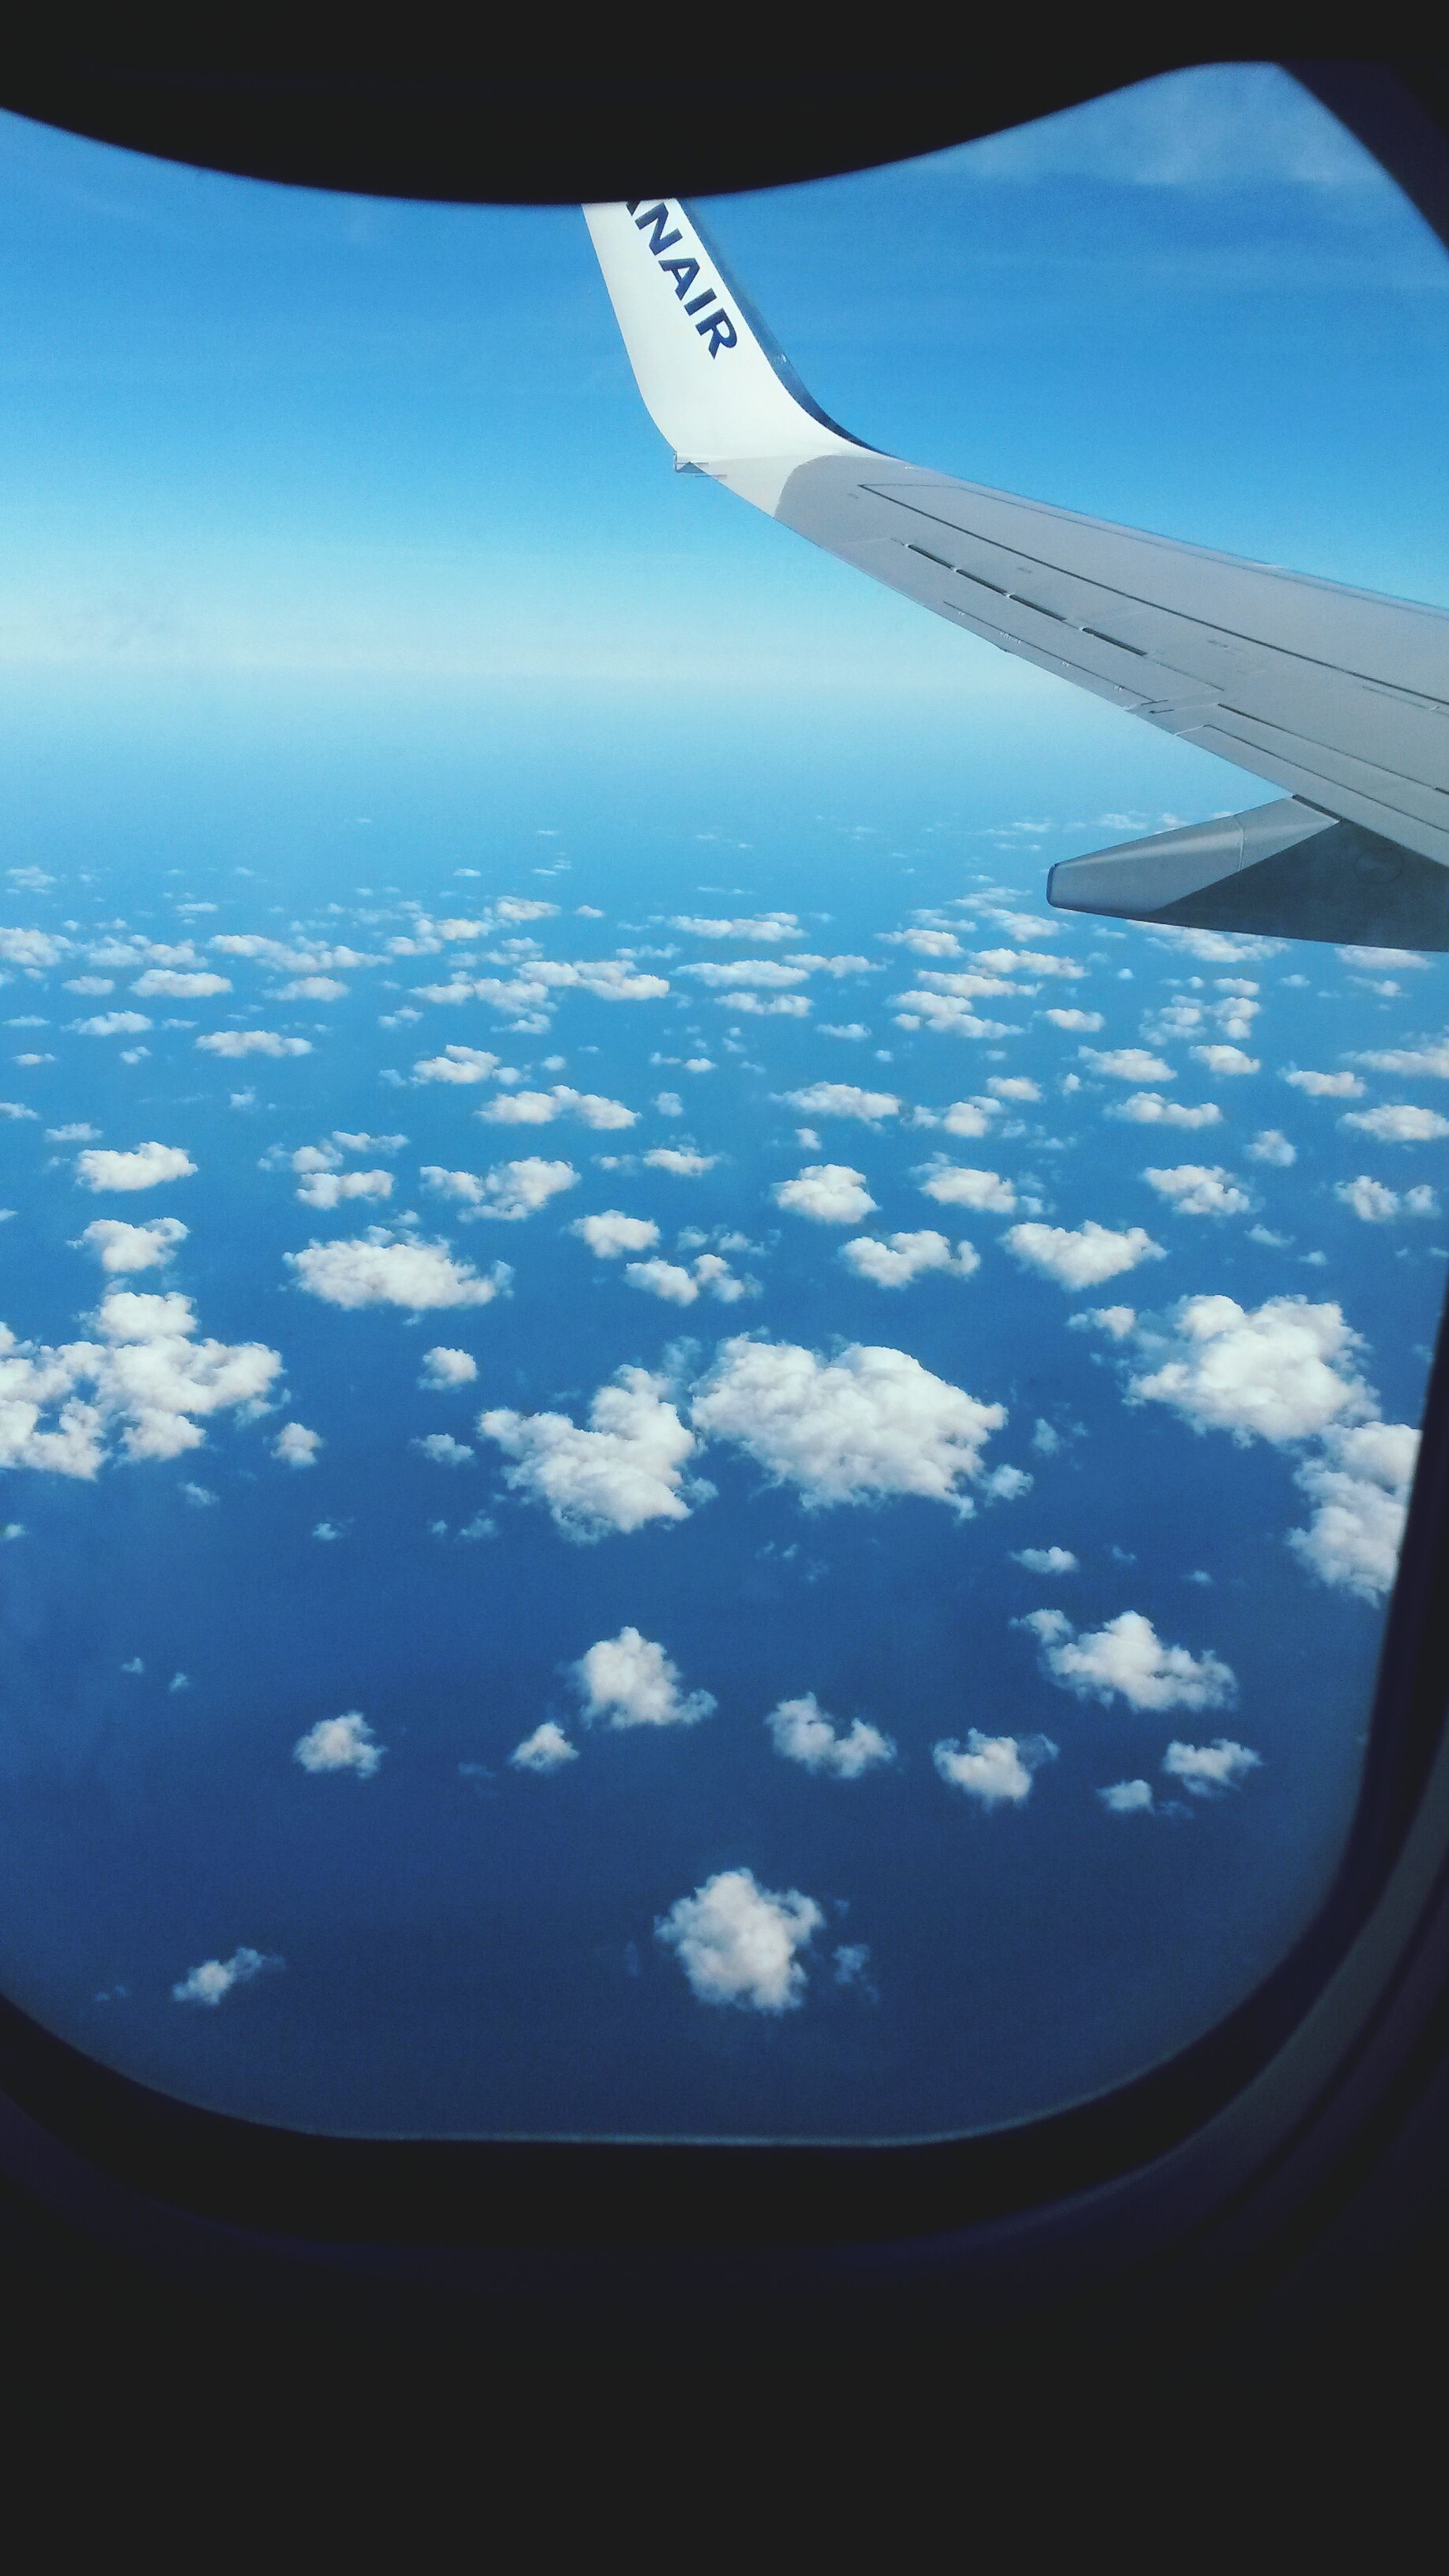 airplane, aerial view, flying, sky, aircraft wing, mid-air, window, air vehicle, scenics, cloud - sky, transportation, nature, vehicle interior, journey, no people, beauty in nature, outdoors, landscape, commercial airplane, day, airplane wing, space, close-up